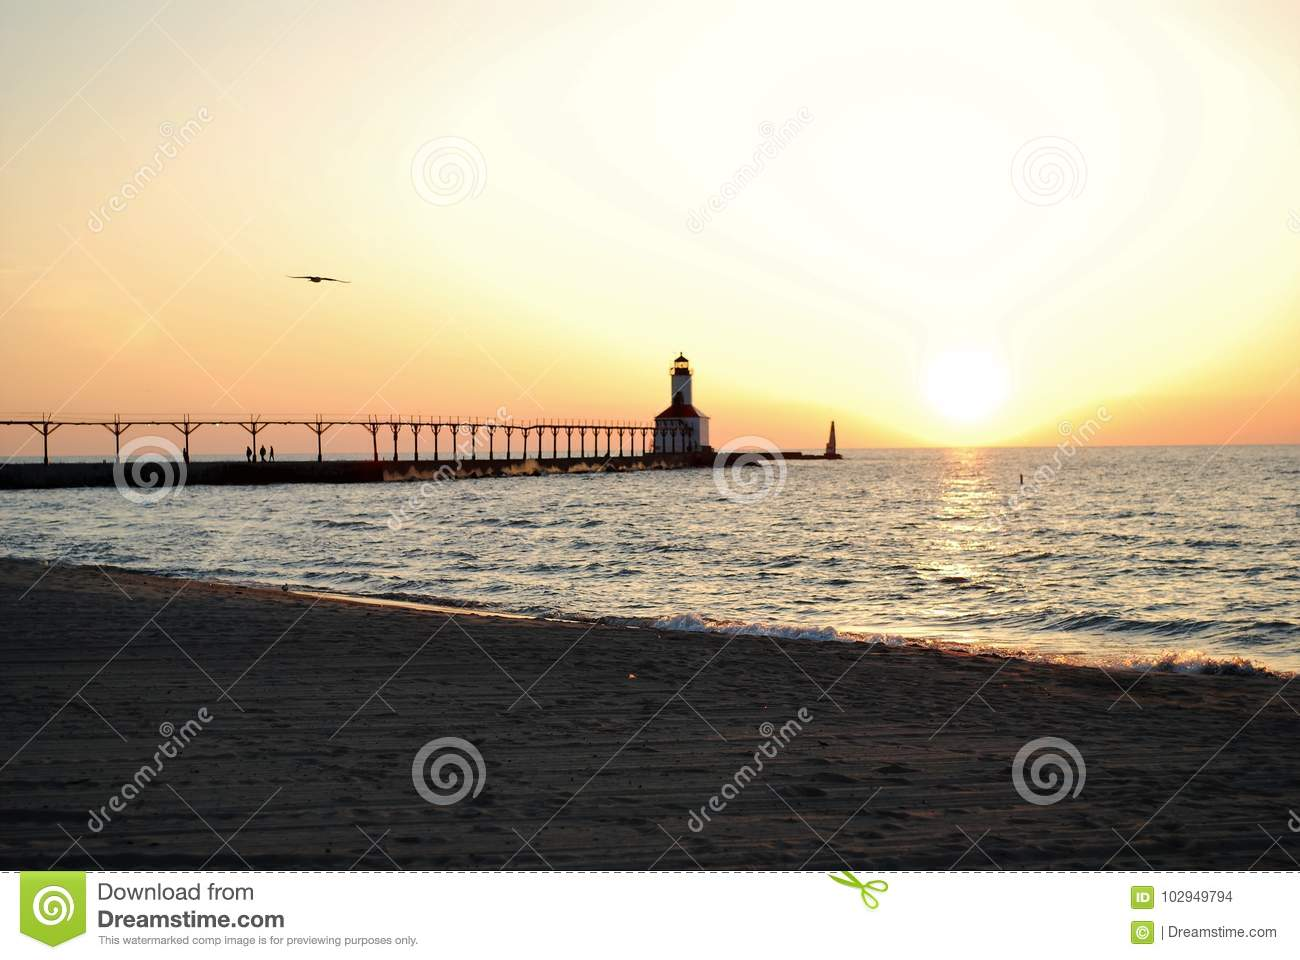 Summer sunset over the lighthouse on lake michigan in michigan city indiana